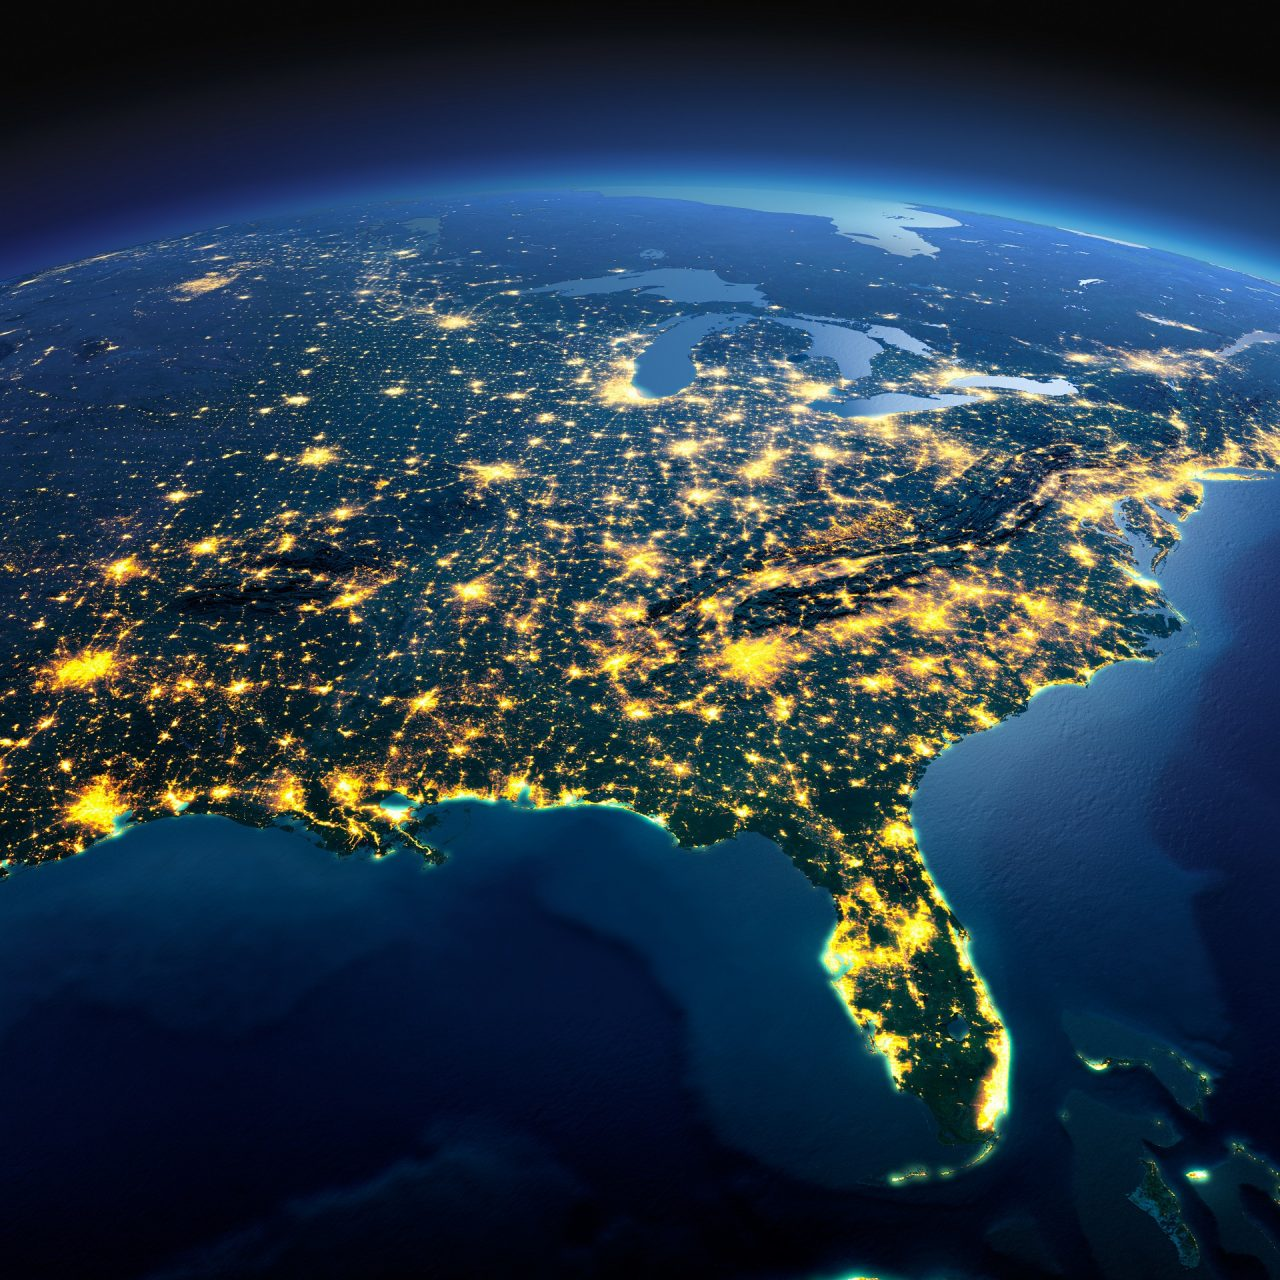 revival hot spots america at night air space Courtesy of Shutterstock com Anton Balazh_344122589 1920×1280